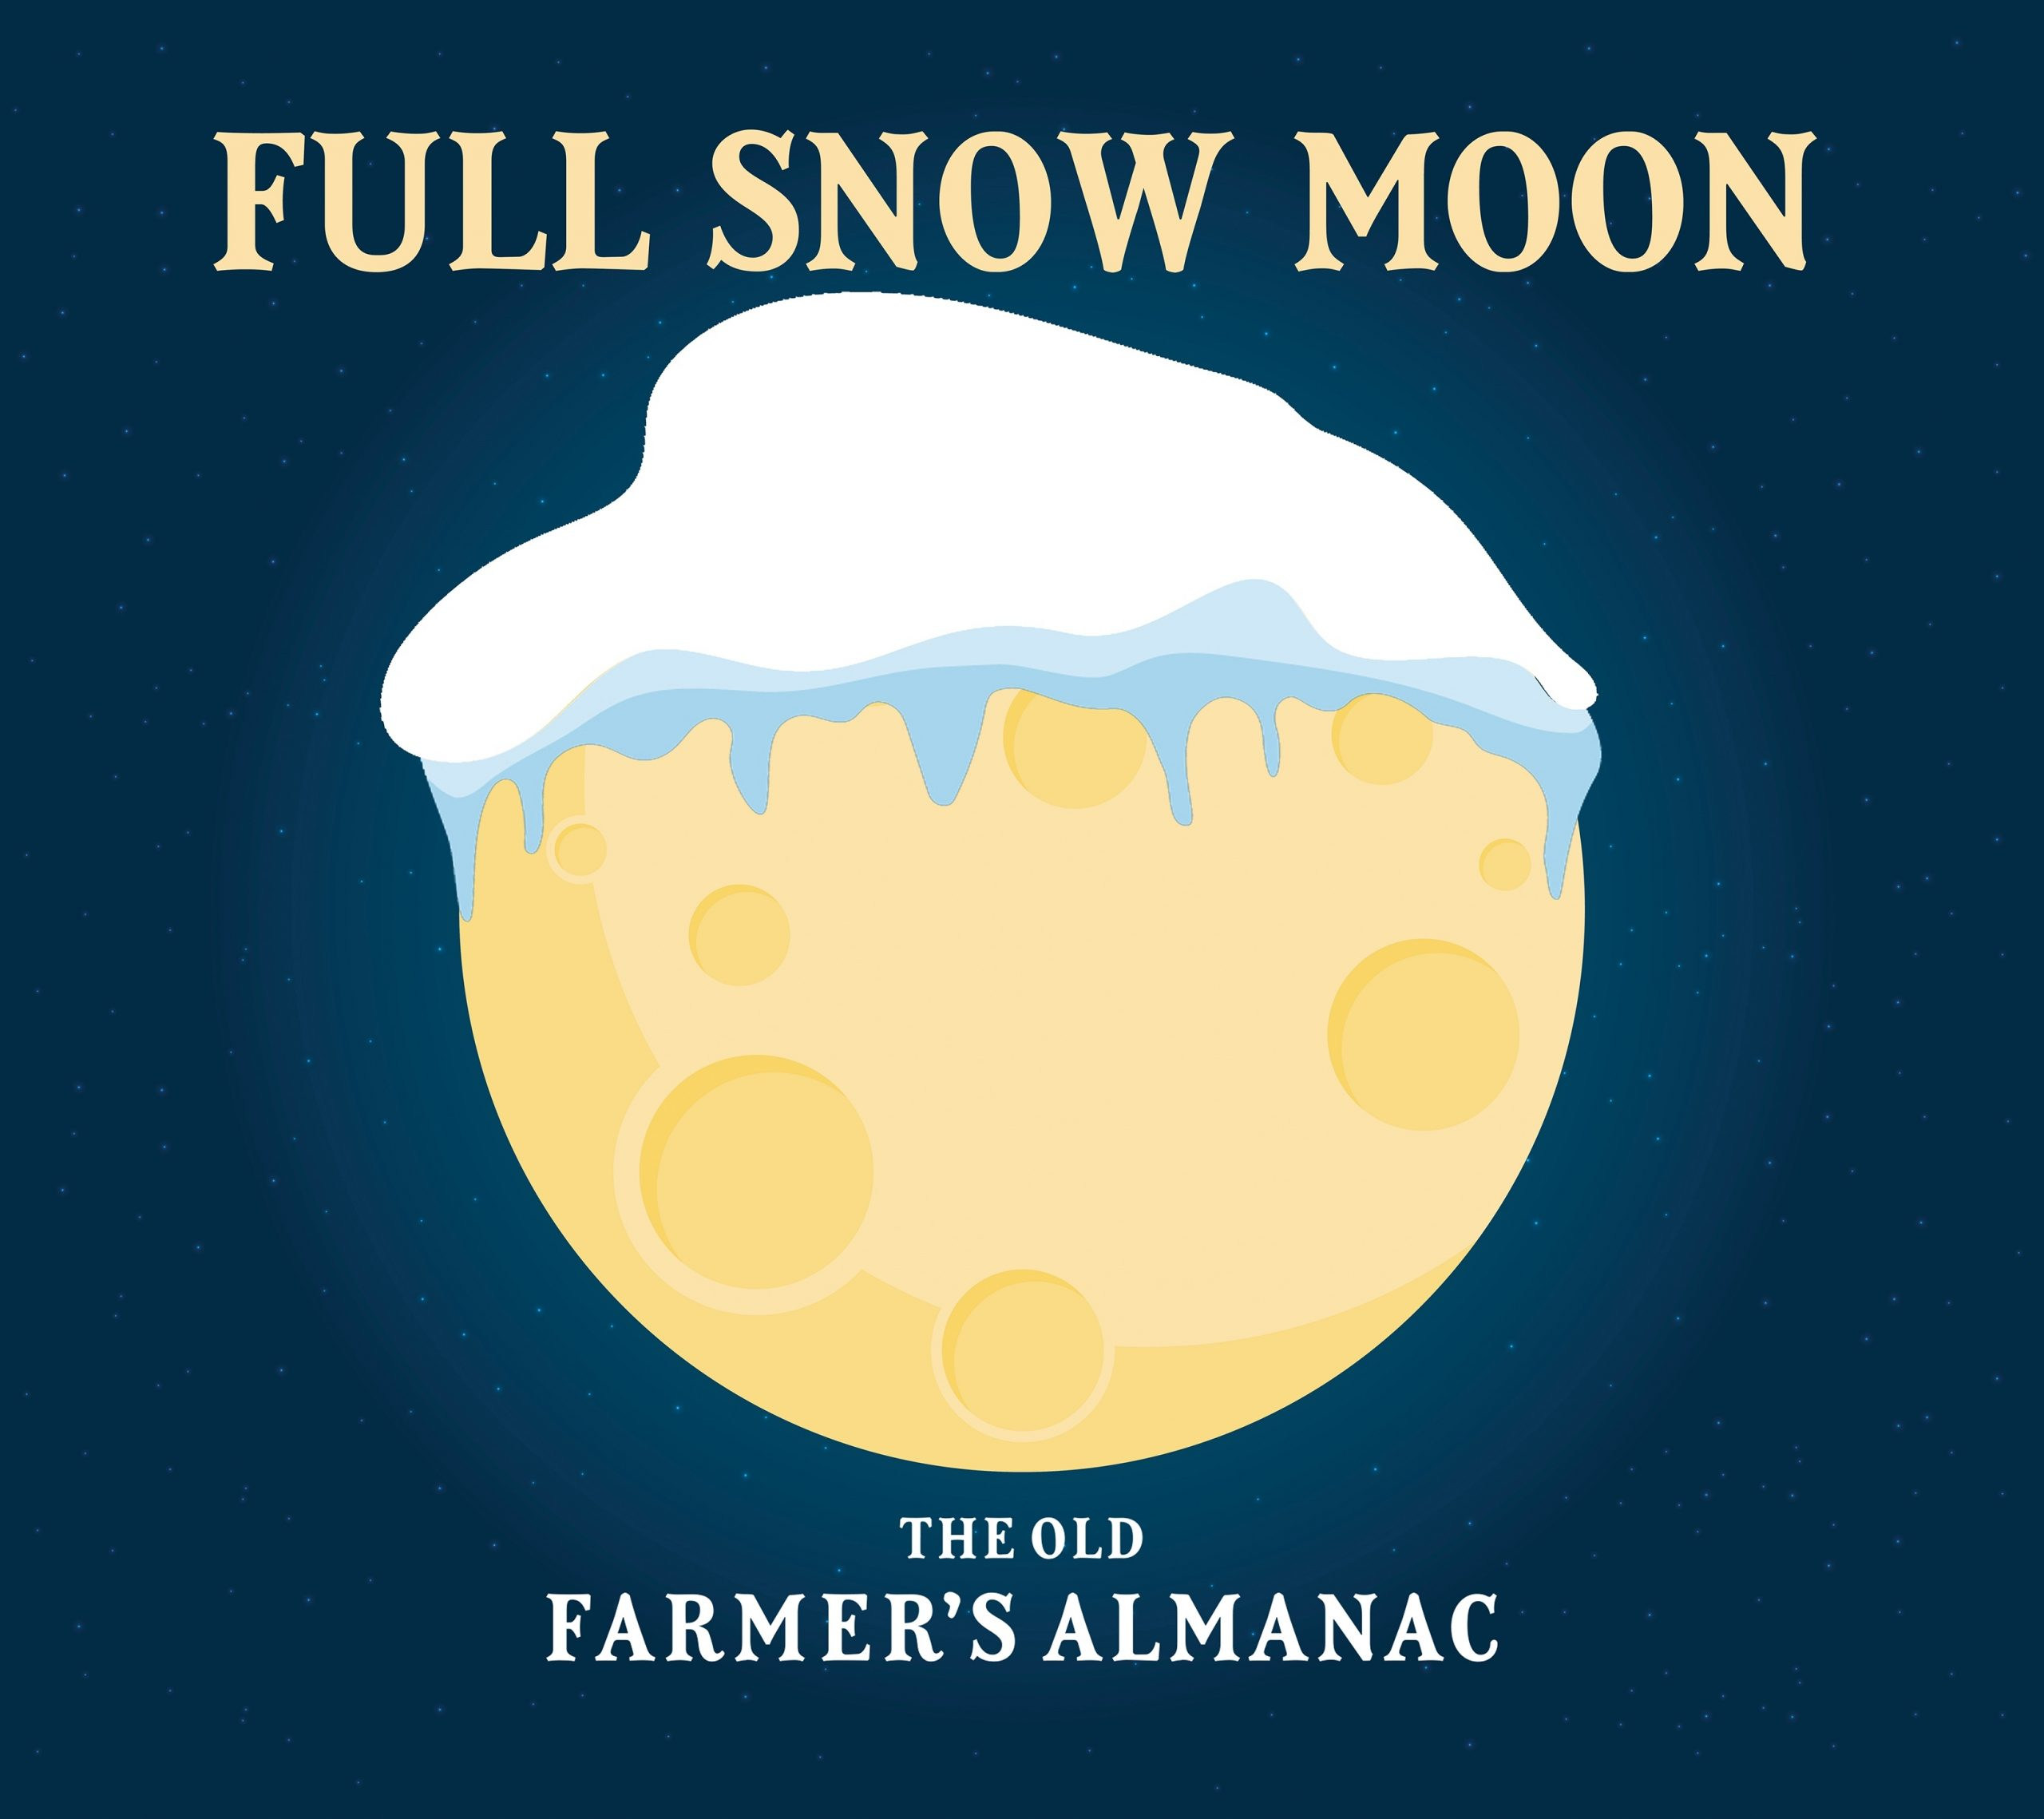 Full Moon In February 2020: See The Full Snow Moon | The Old